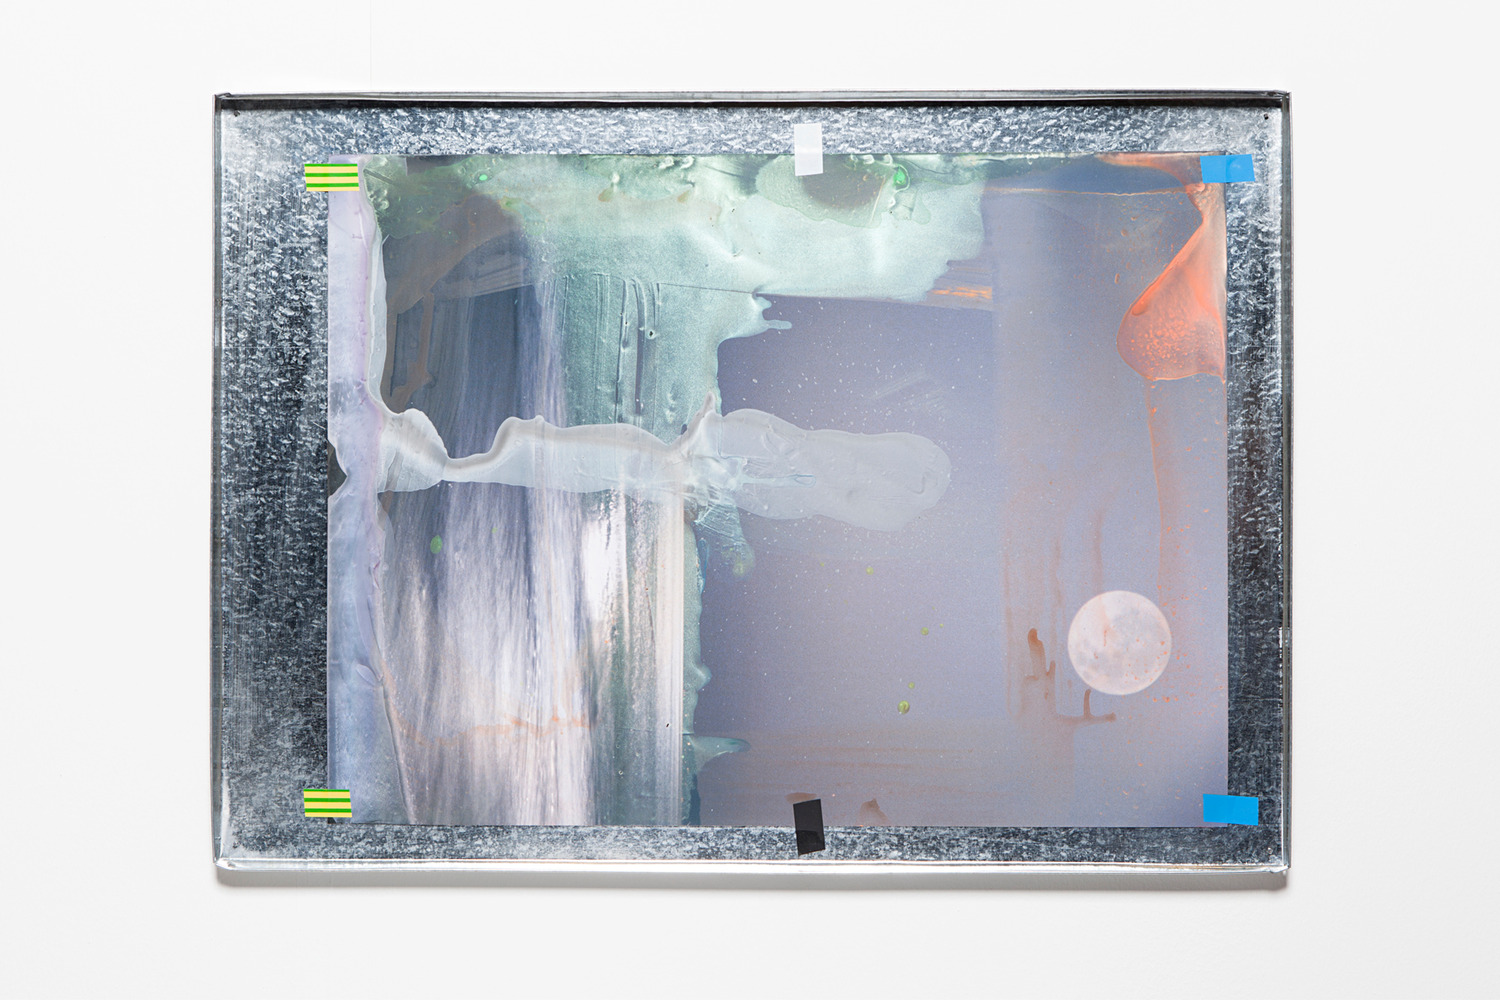 Lookalike II, 2015, Acrylic paint on stock photograph, electrical tape, galvanised metal tray, 52.5 x 72.5 x 2 cm